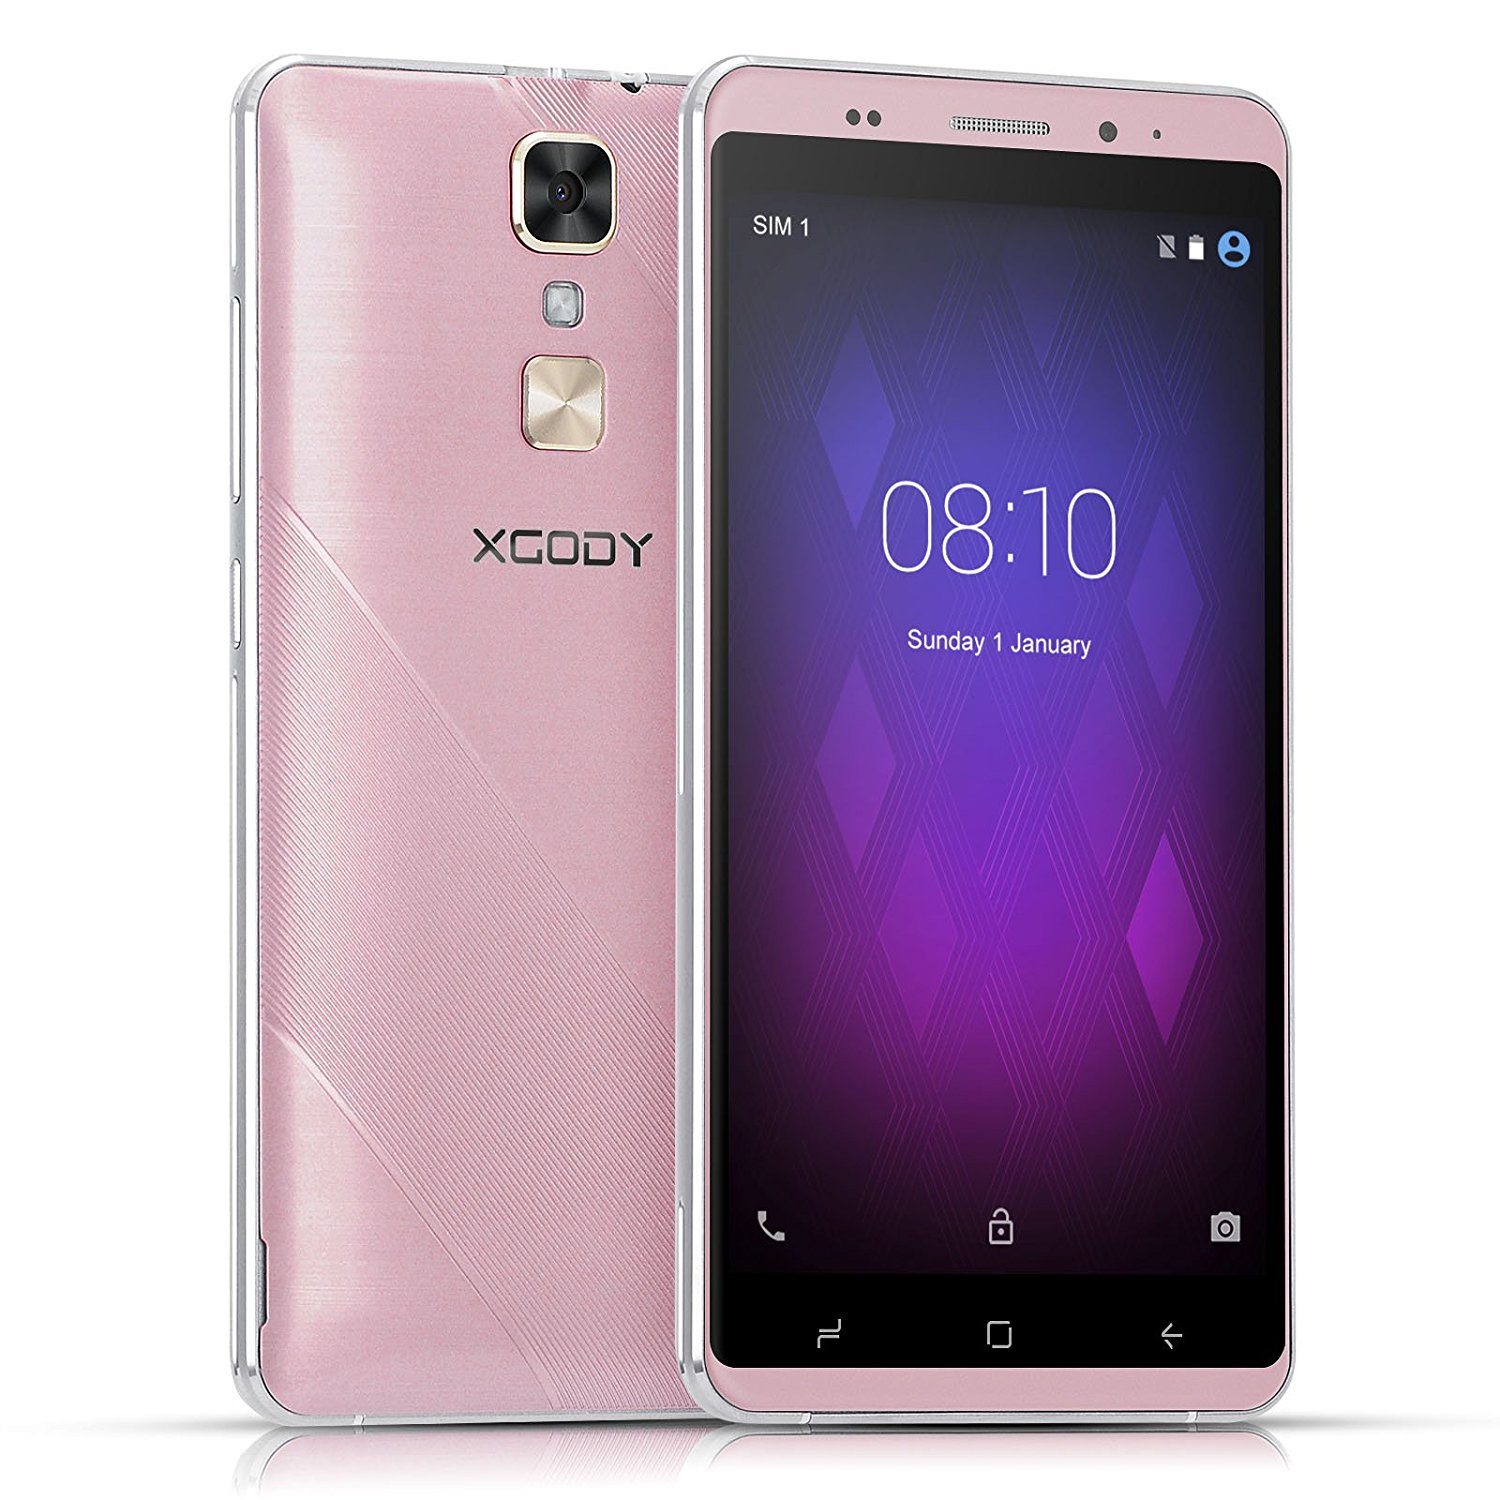 Xgody D17 RAM1GB+ROM 16GB 3G 5.5 inch Android 5.1 Smart Phone MTK6580A Quad Core 1.3GHz Dual Camera 5.0MP+ 8.0MP Rose Gold